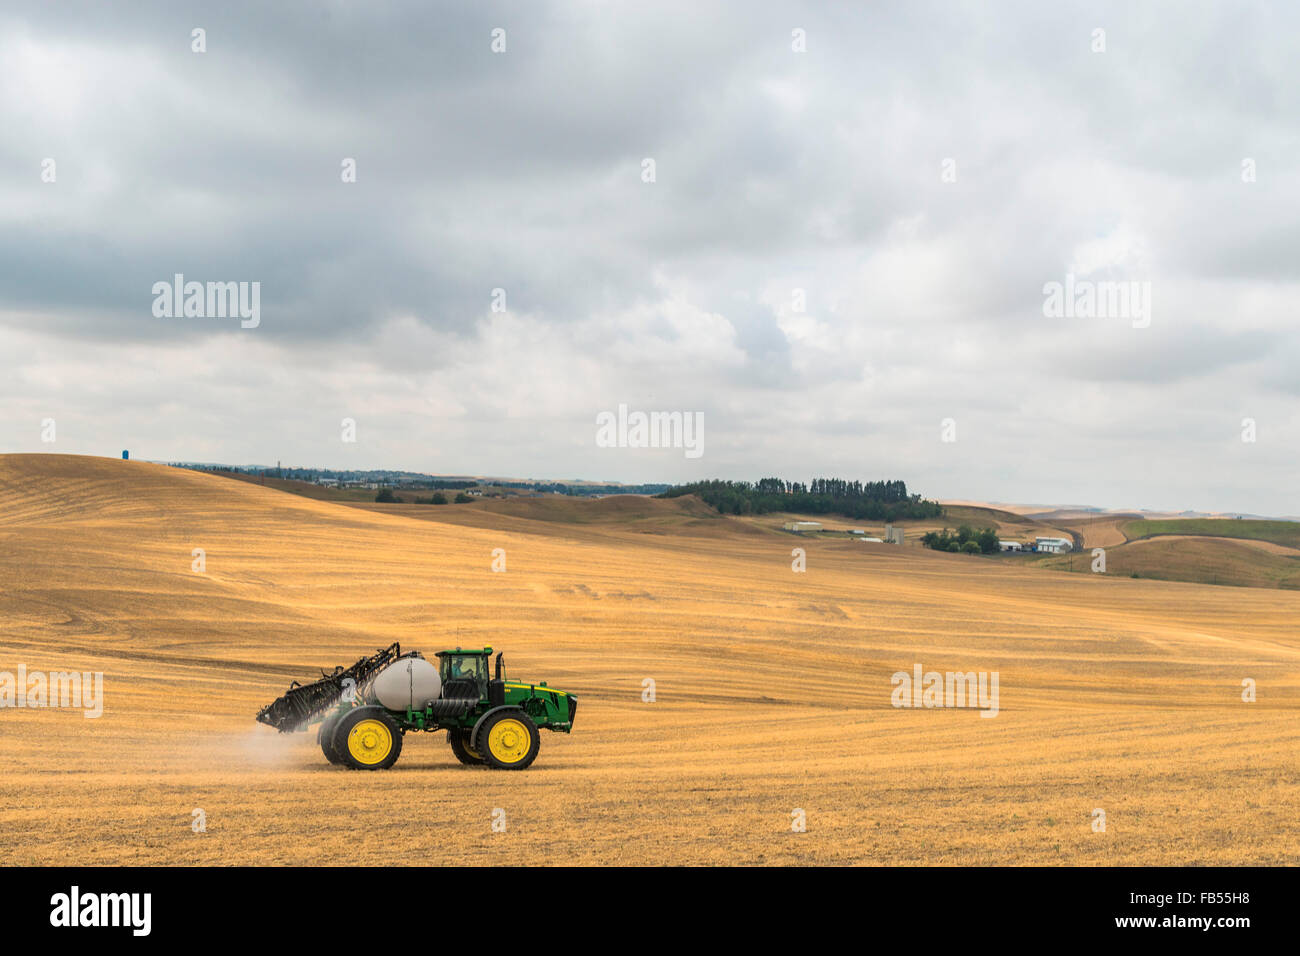 John Deere self propelled sprayer spraying herbicide on a field in advance of preparing it to plant in the Palouse - Stock Image